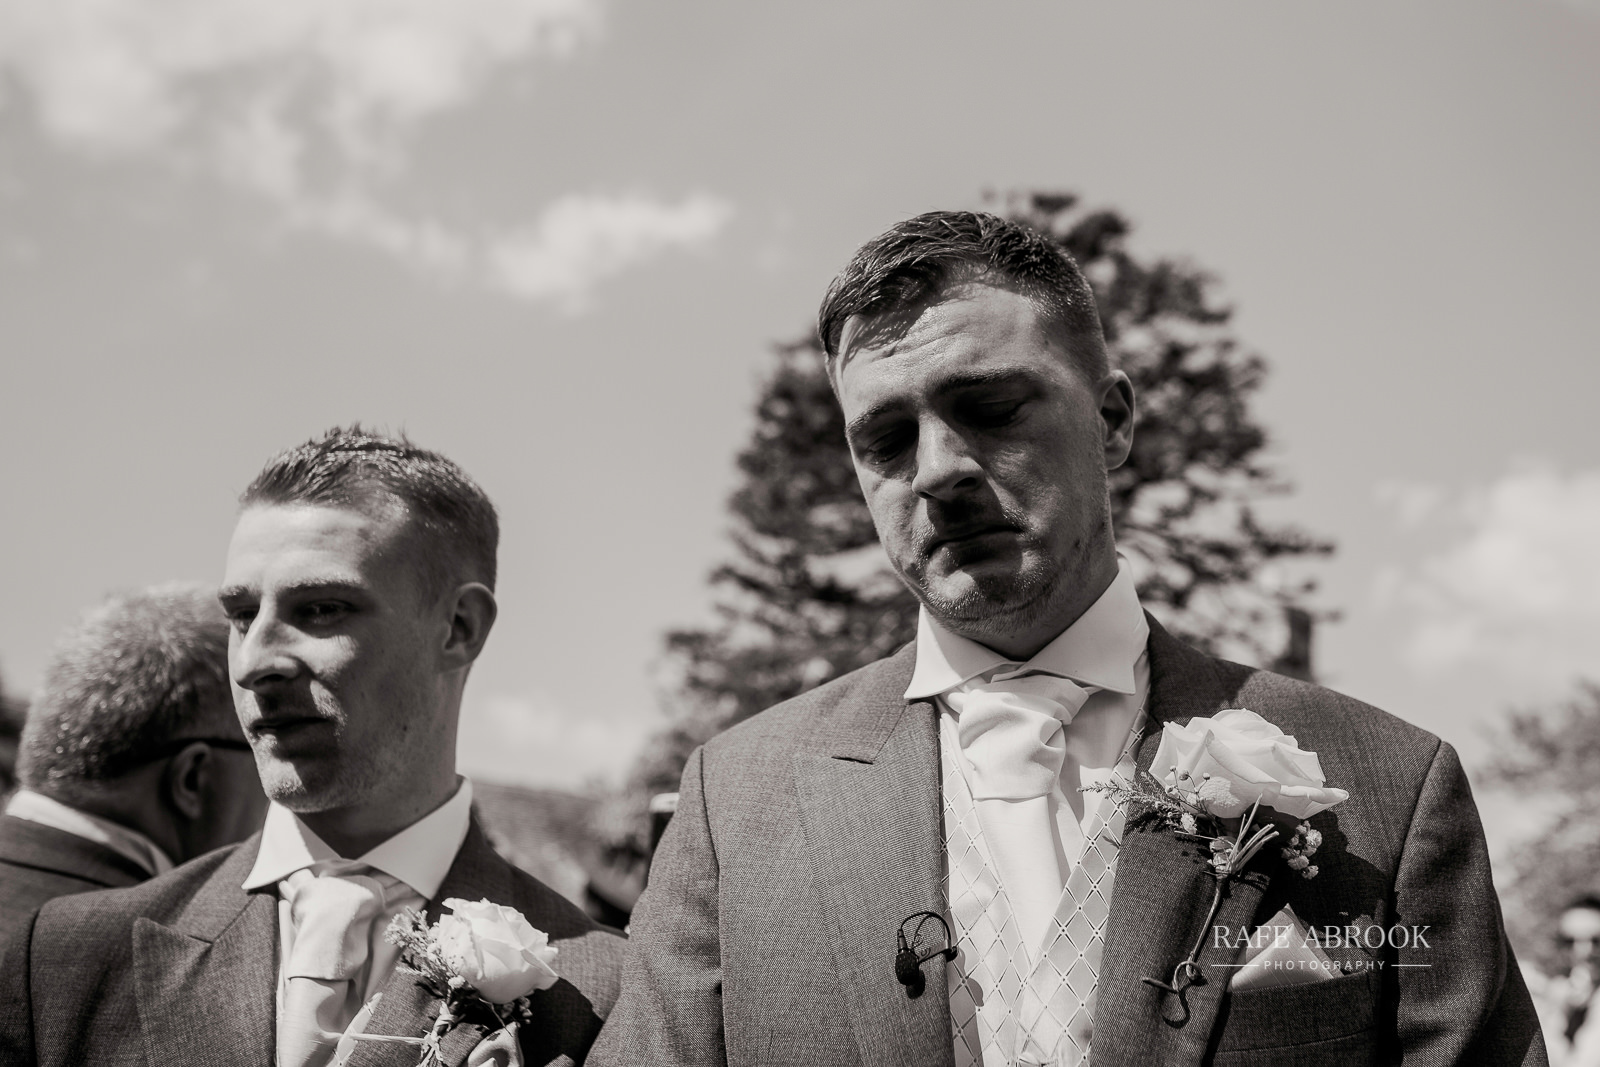 south farm wedding royston hertfordshire wedding photographer rafe abrook photography-1487.jpg